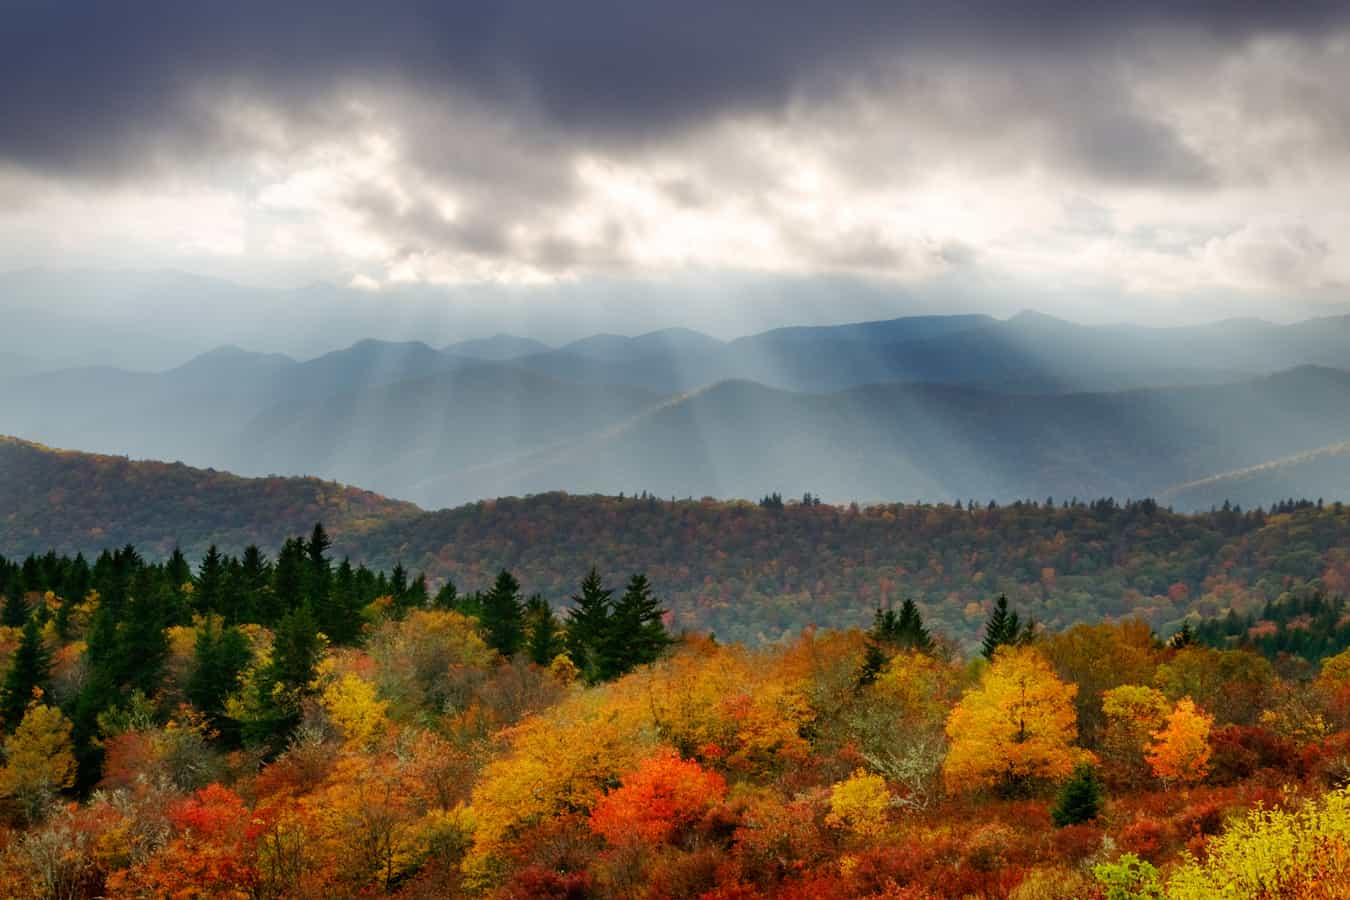 Autumn in Asheville's Mountains, photo by Dave Allen